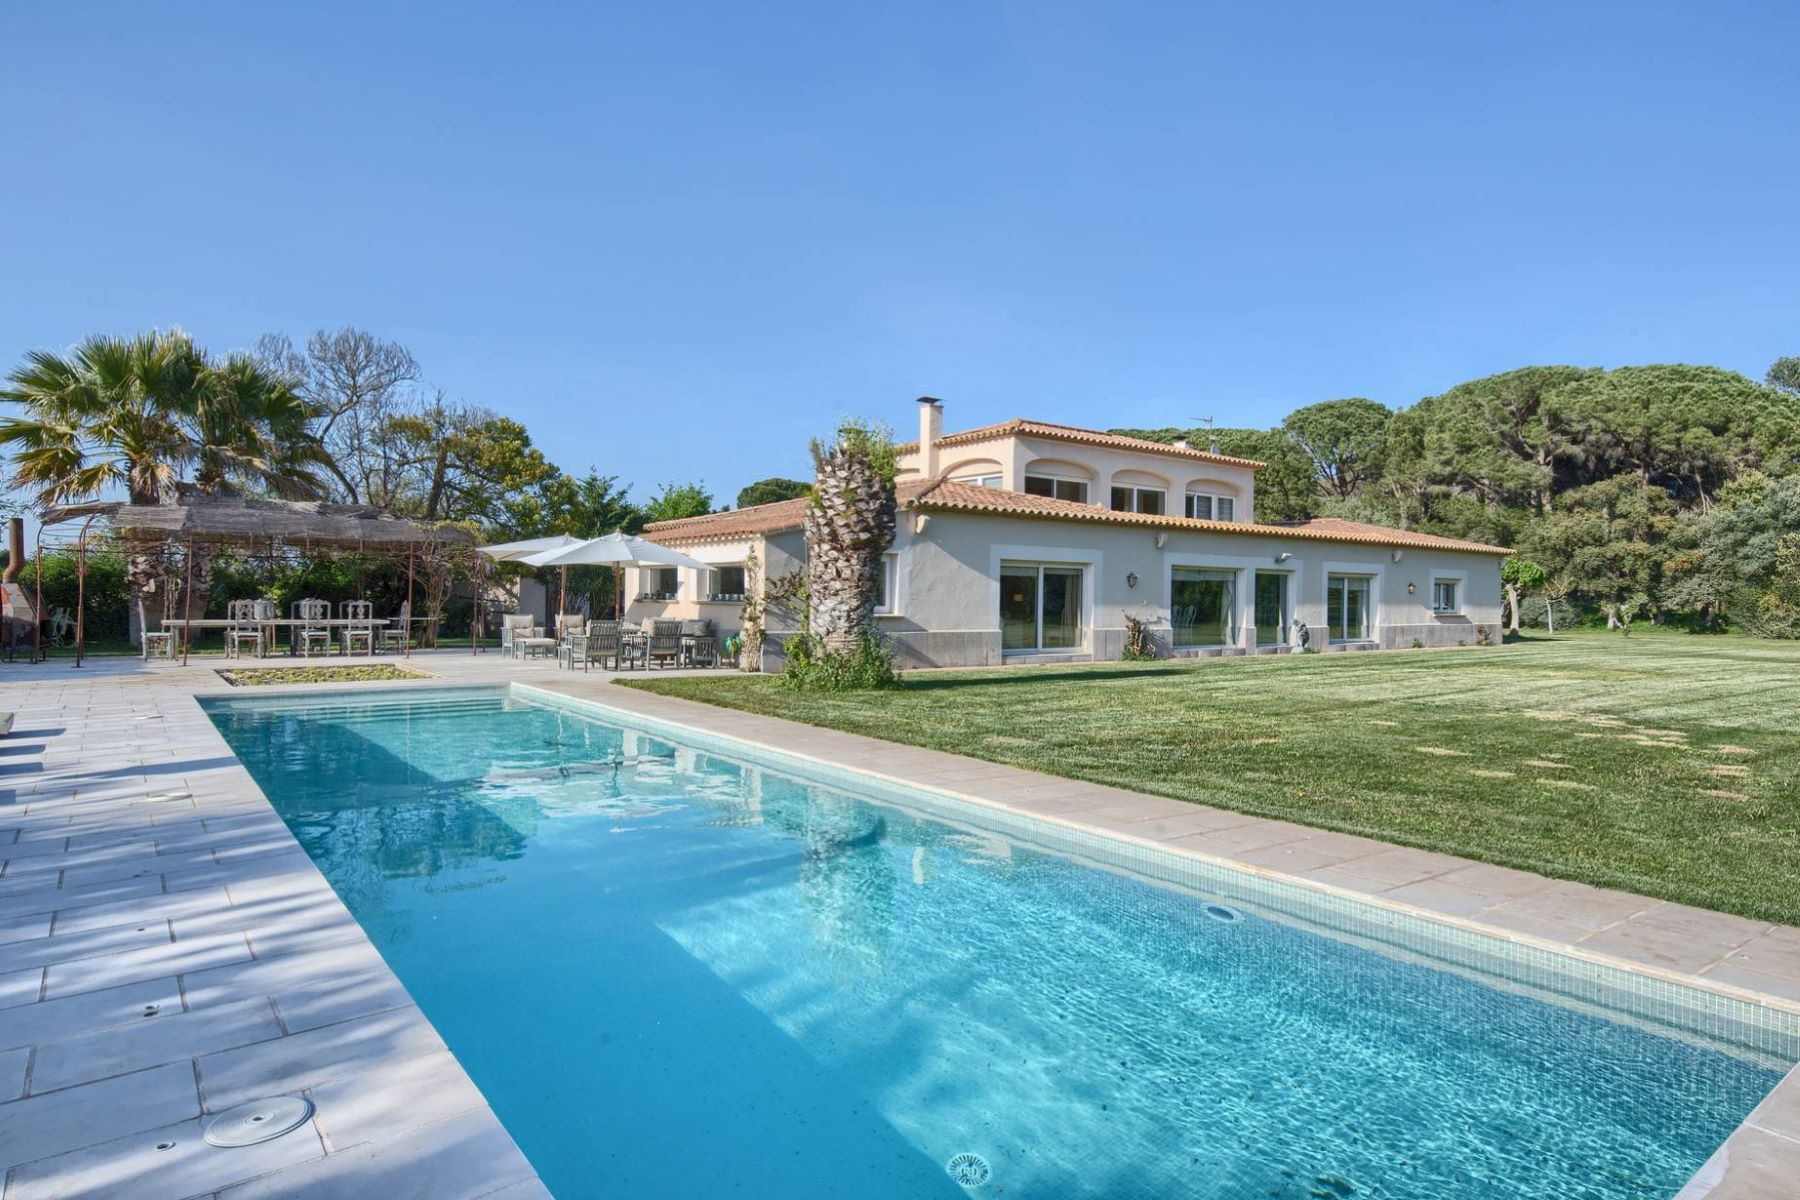 Casa Unifamiliar por un Venta en Exclusive property in the heart of Pals, between the beach and Golf Pals, Costa Brava, 17256 España